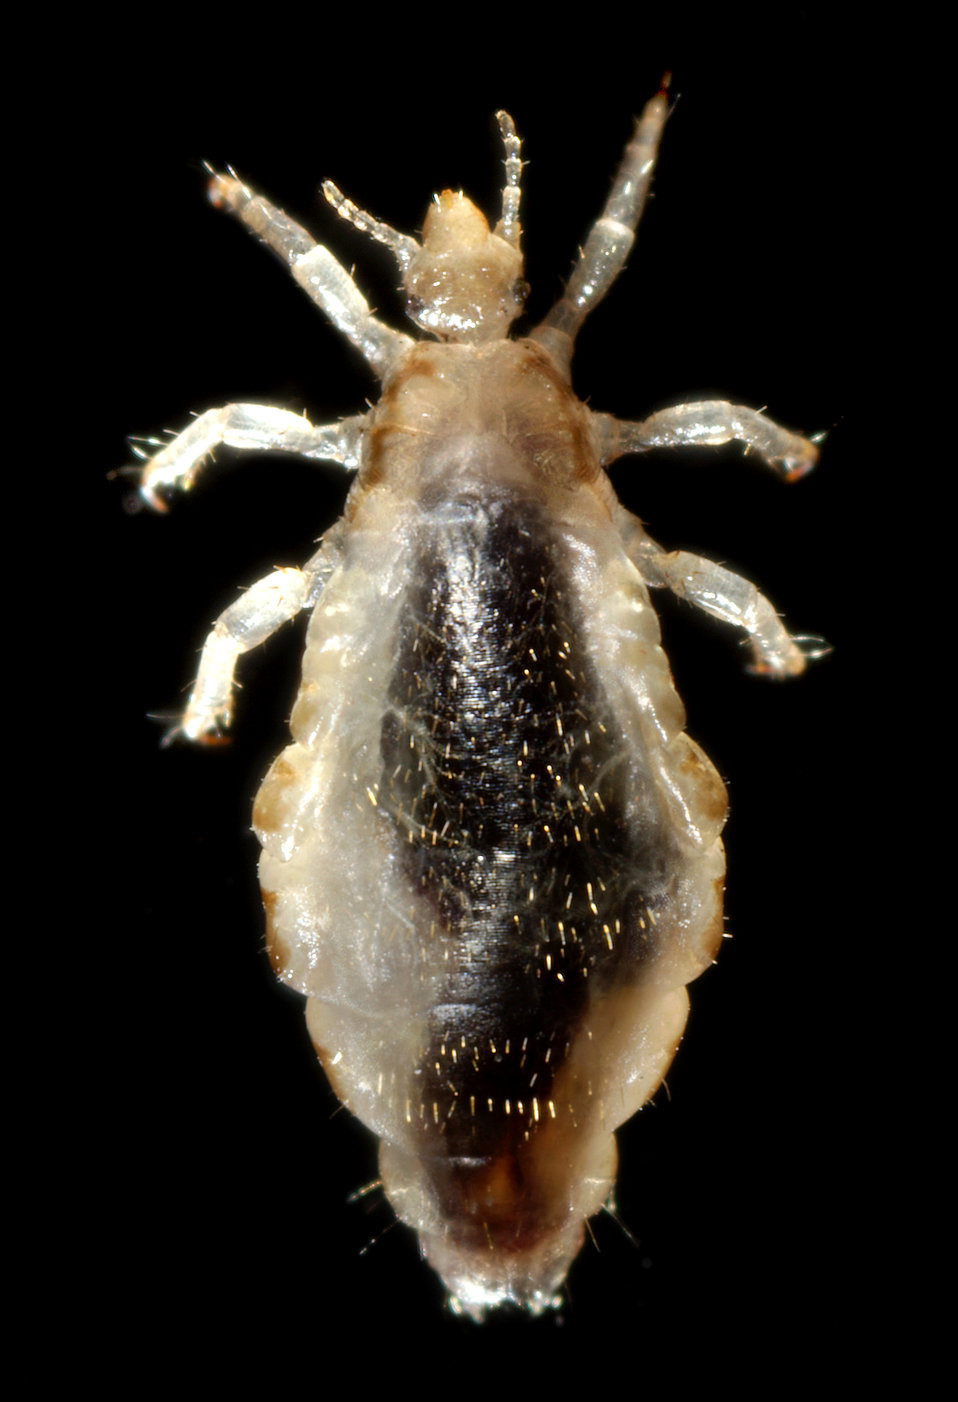 This 2006 photograph depicted a dorsal view of a female body louse, Pediculus humanus var. corporis. Some of the external morphologic featur